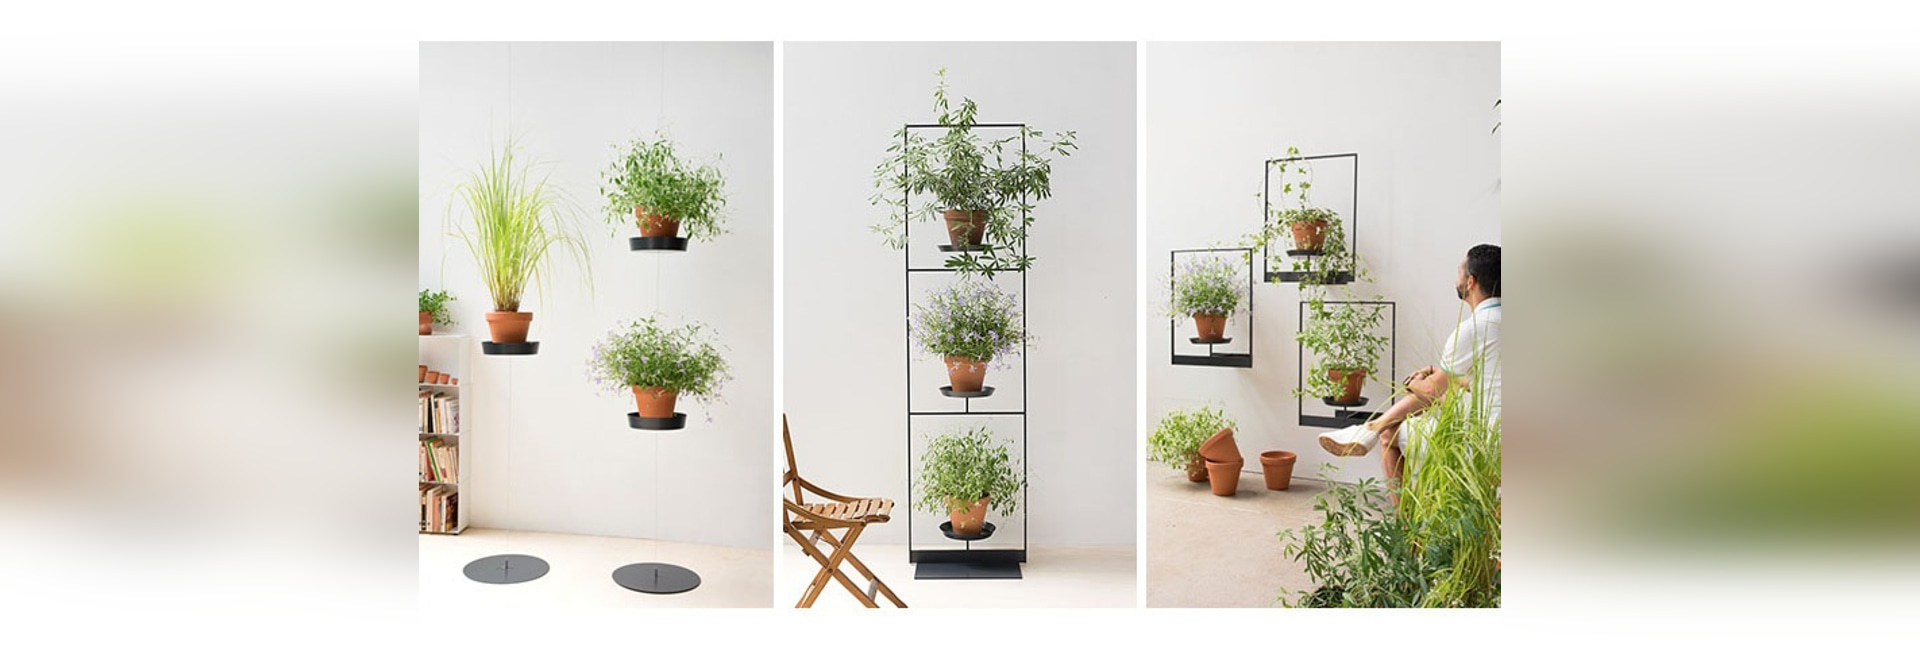 The Teepots Plant Stand Collection by Mauro Canfori